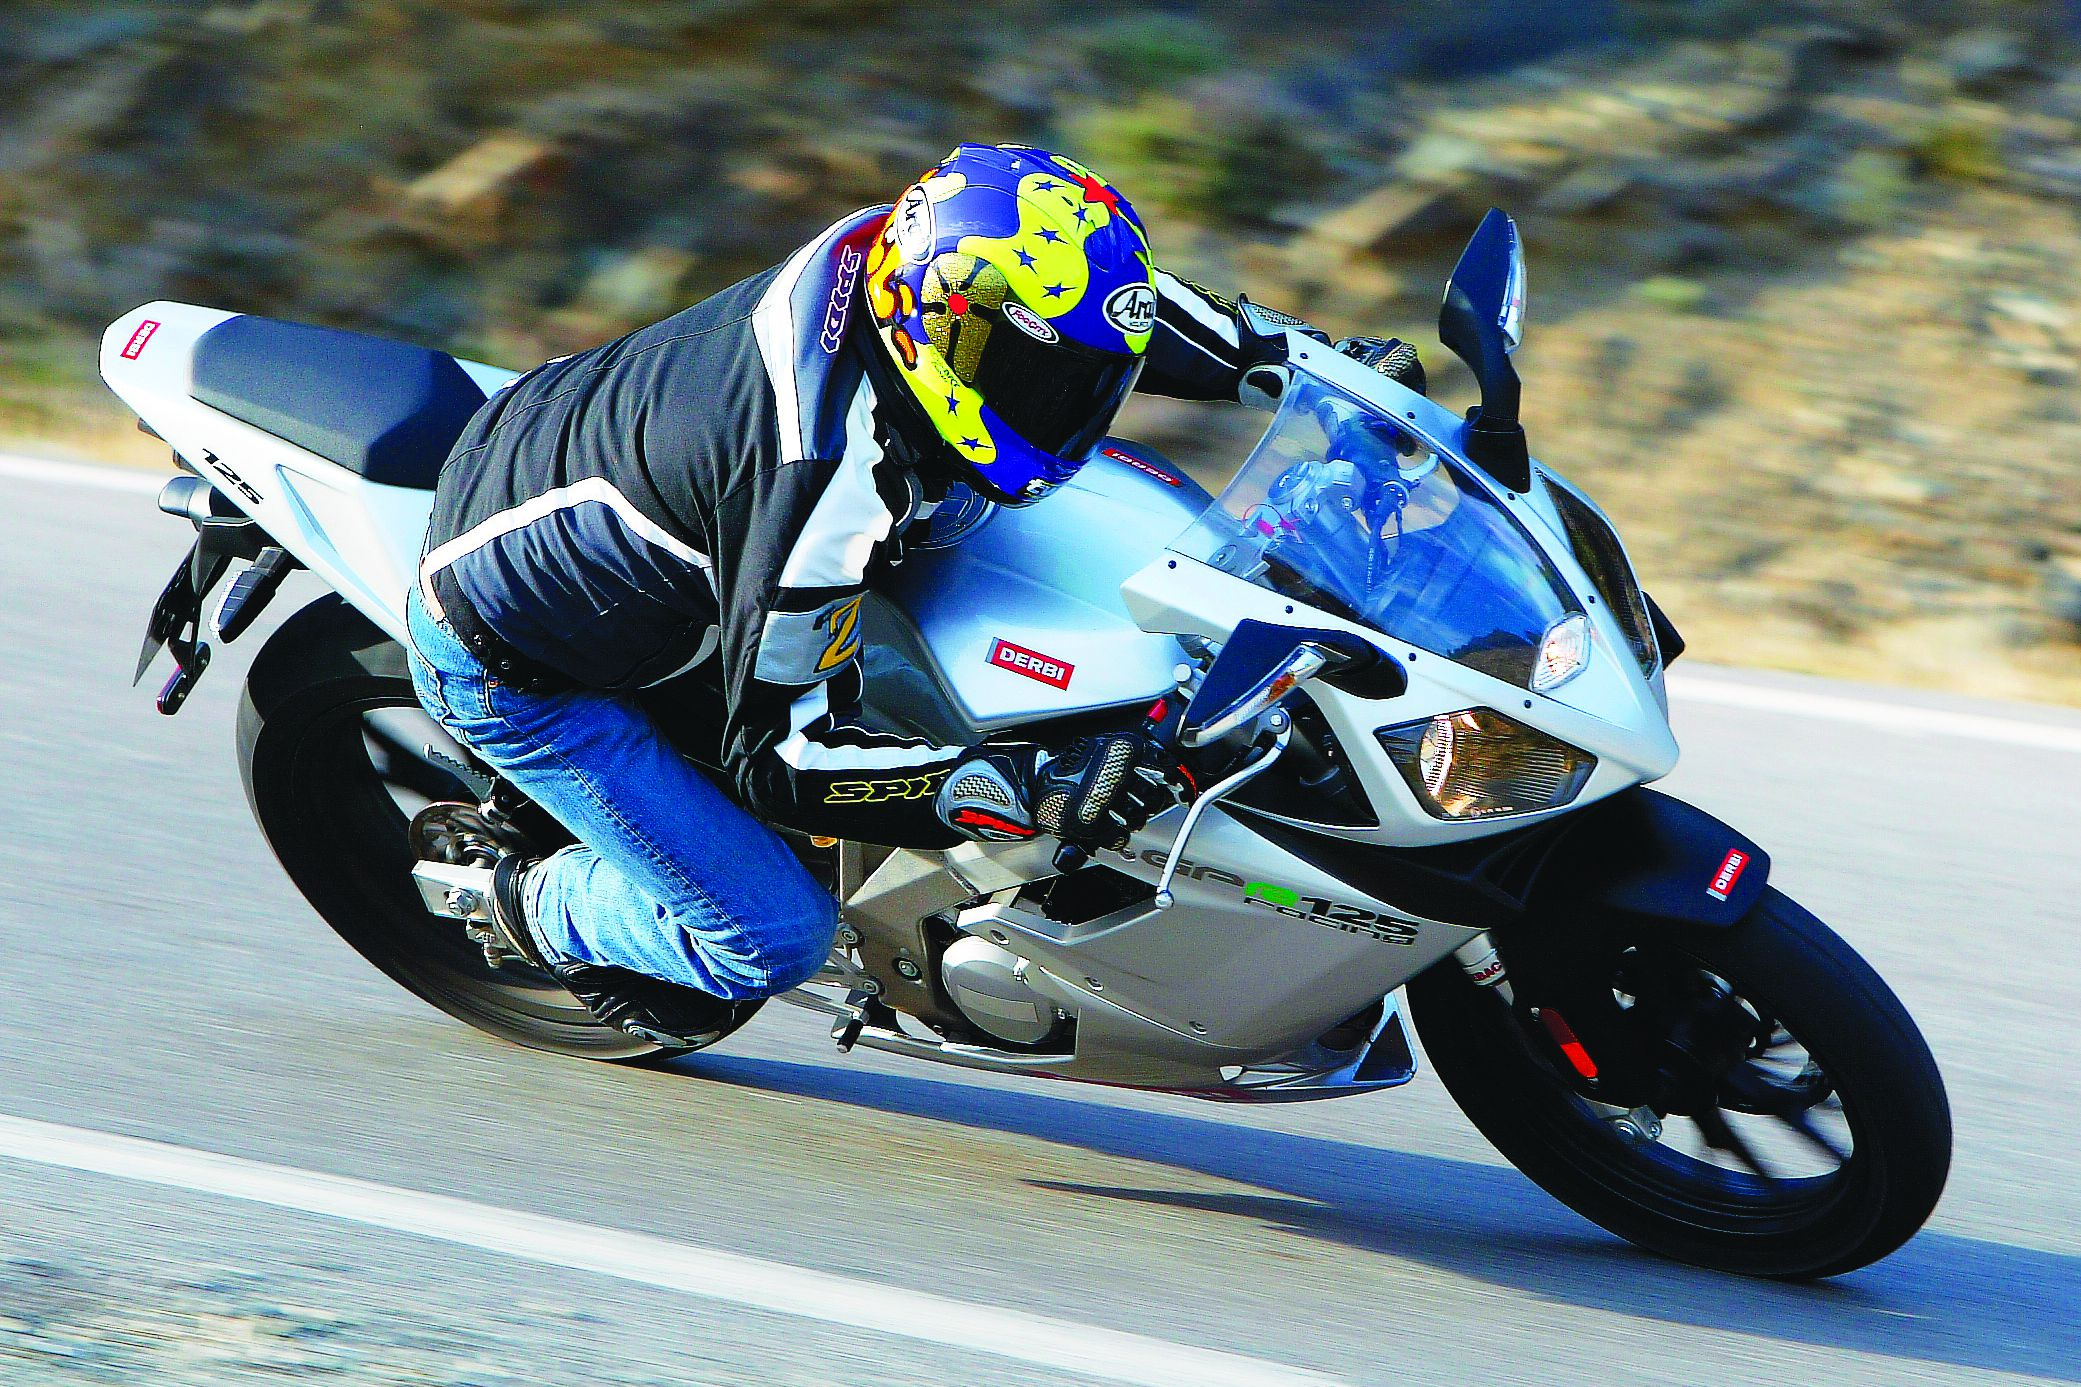 It's a racing series bike & has great performance